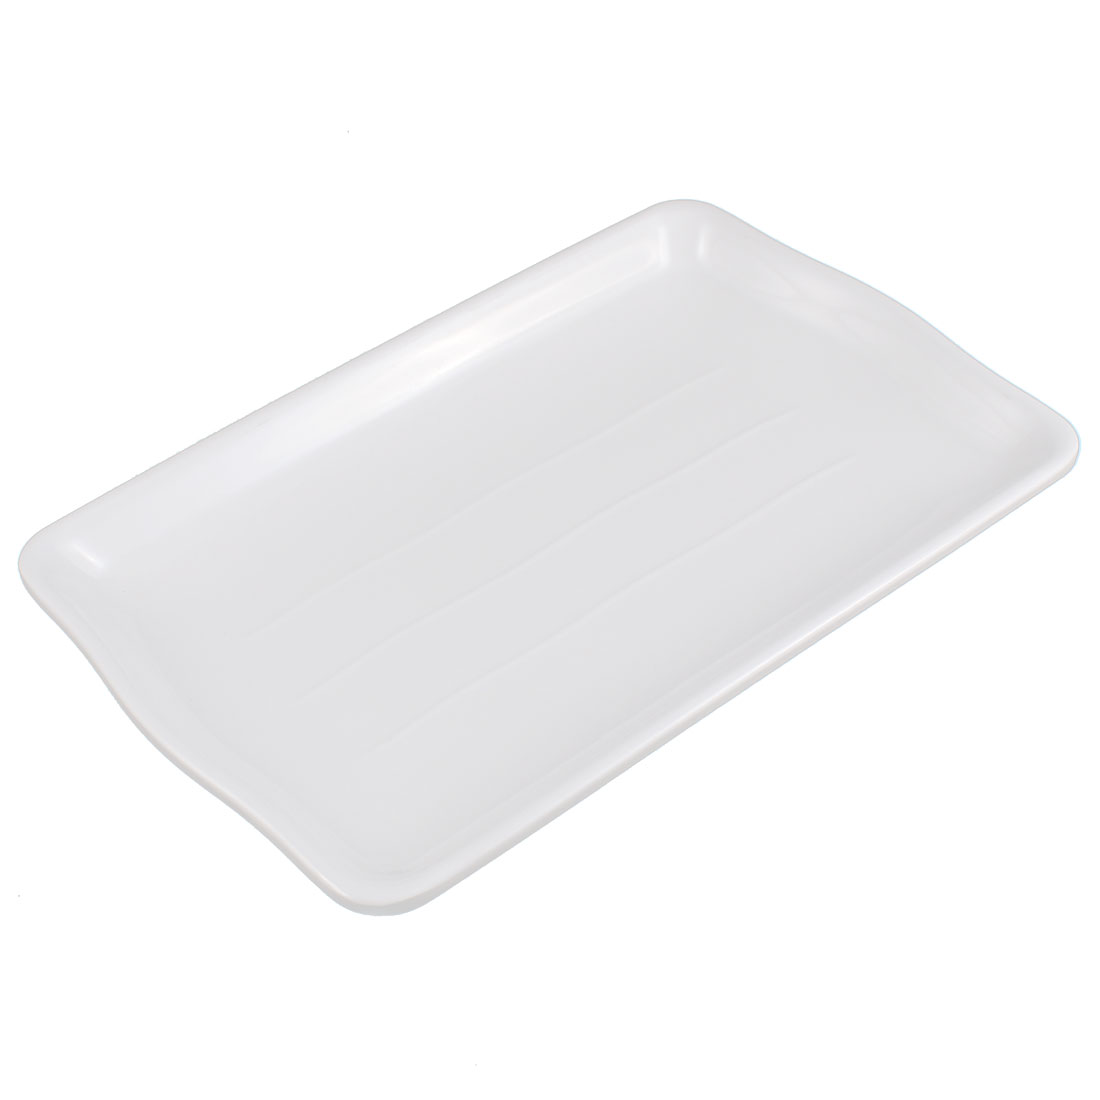 Kitchen Plastic Rectangle Design Plate Dish Tableware White 23.5 x 15cm